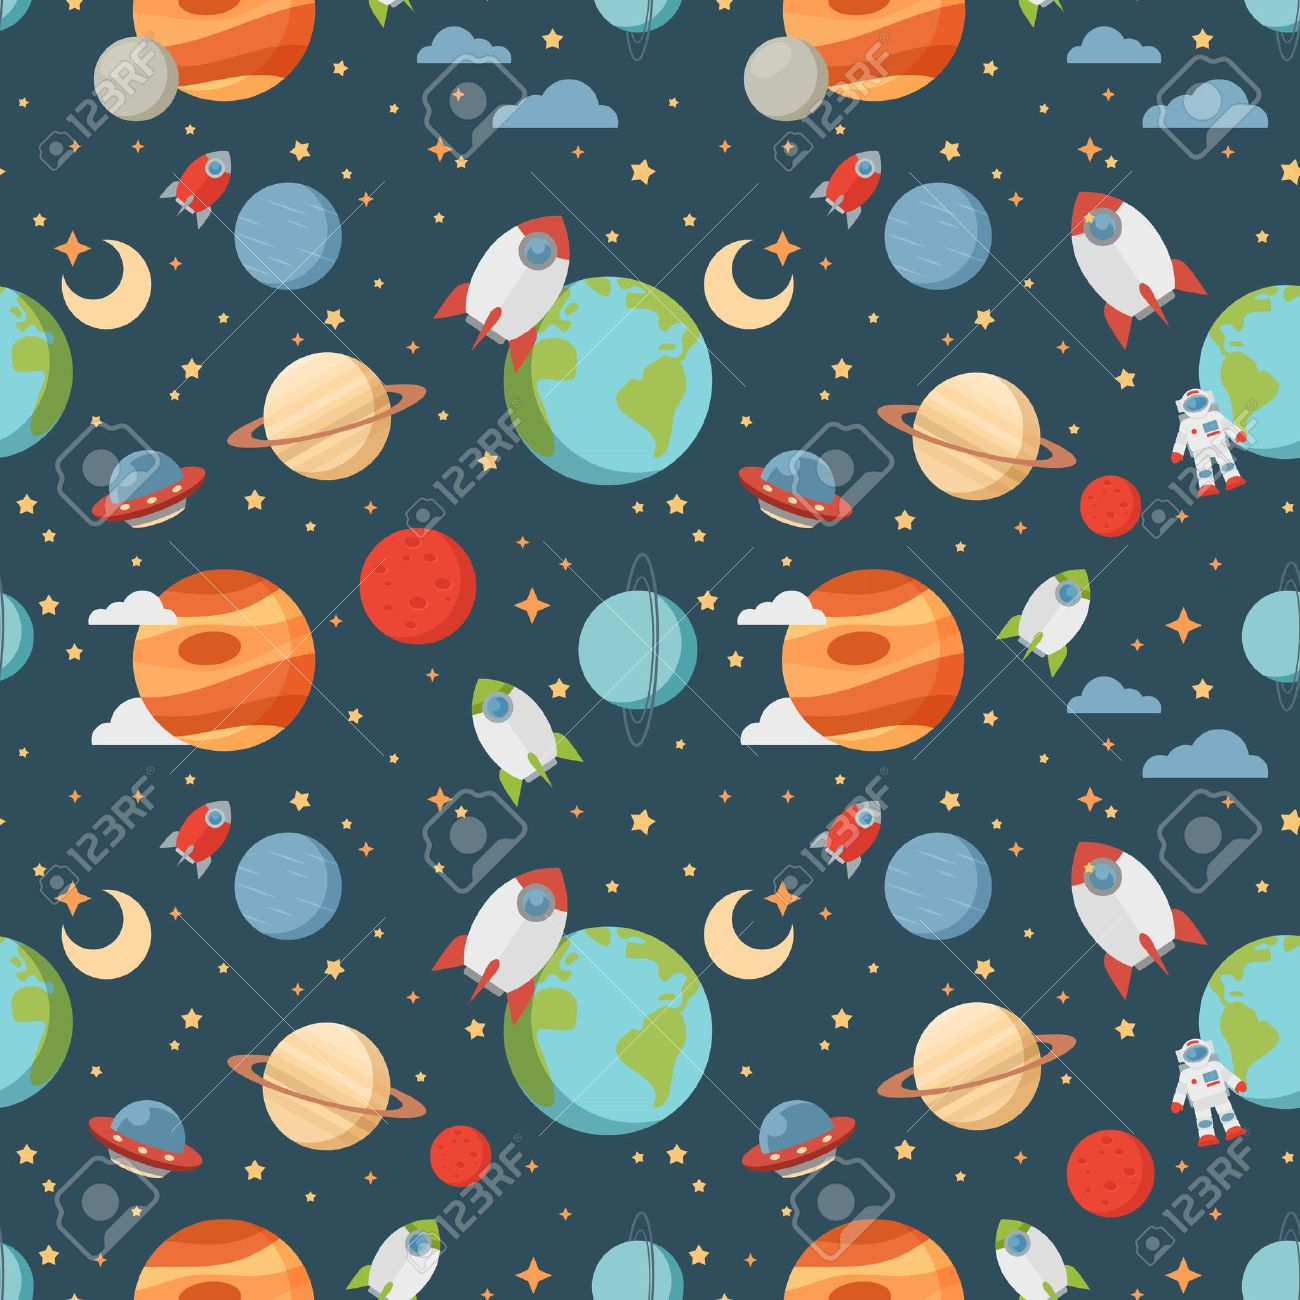 Seamless children cartoon space pattern with rockets planets stars and universe over the dark night sky background - 40171567